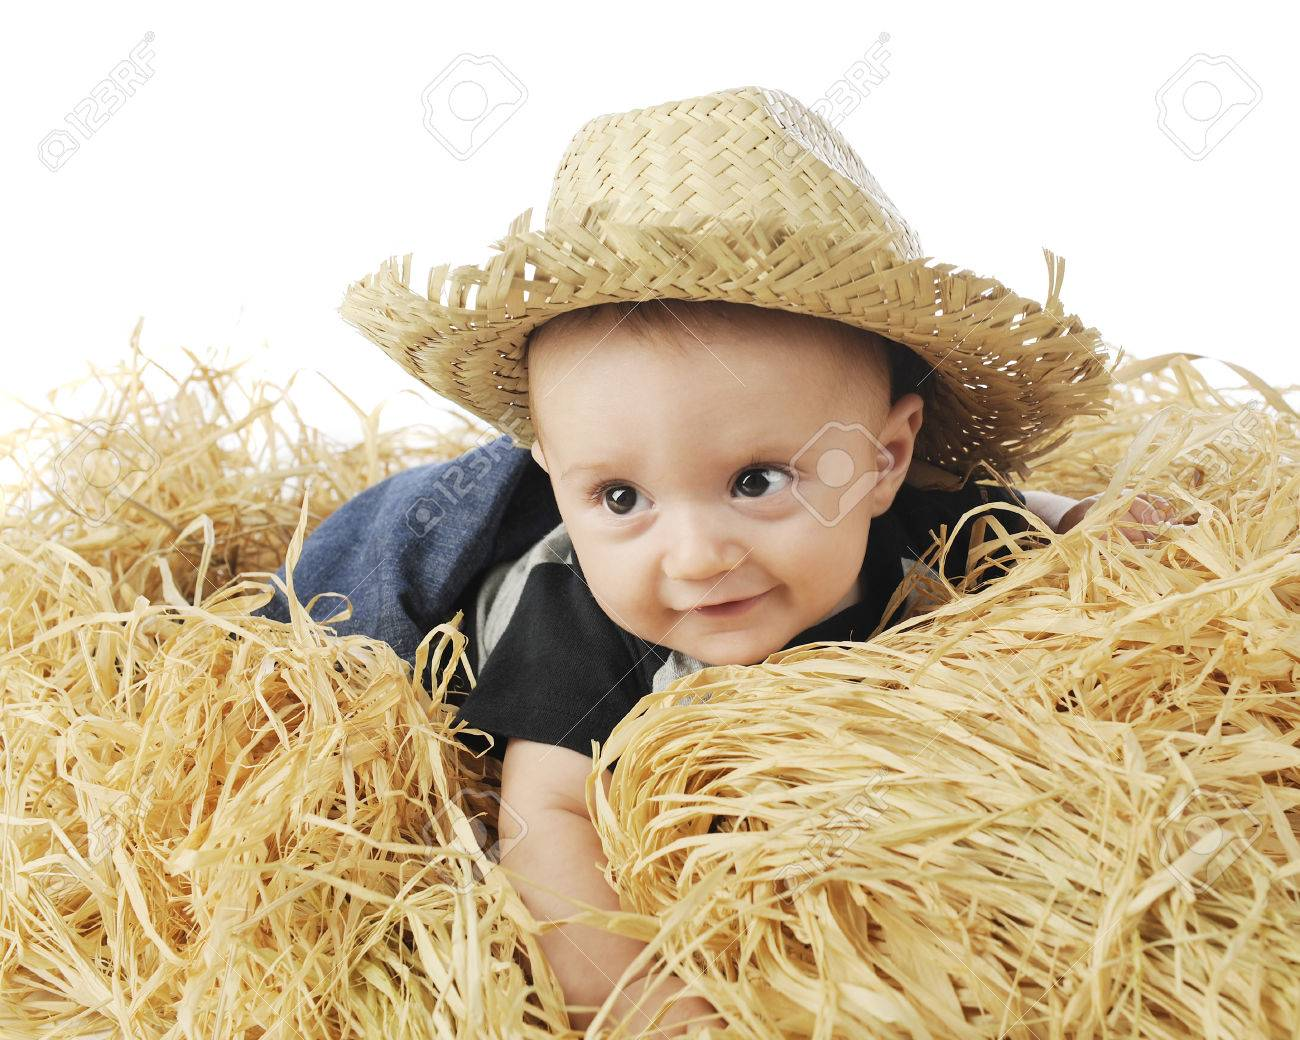 An adorable 3-month old baby farmer happily belly-down in the hay and 8132018aebd